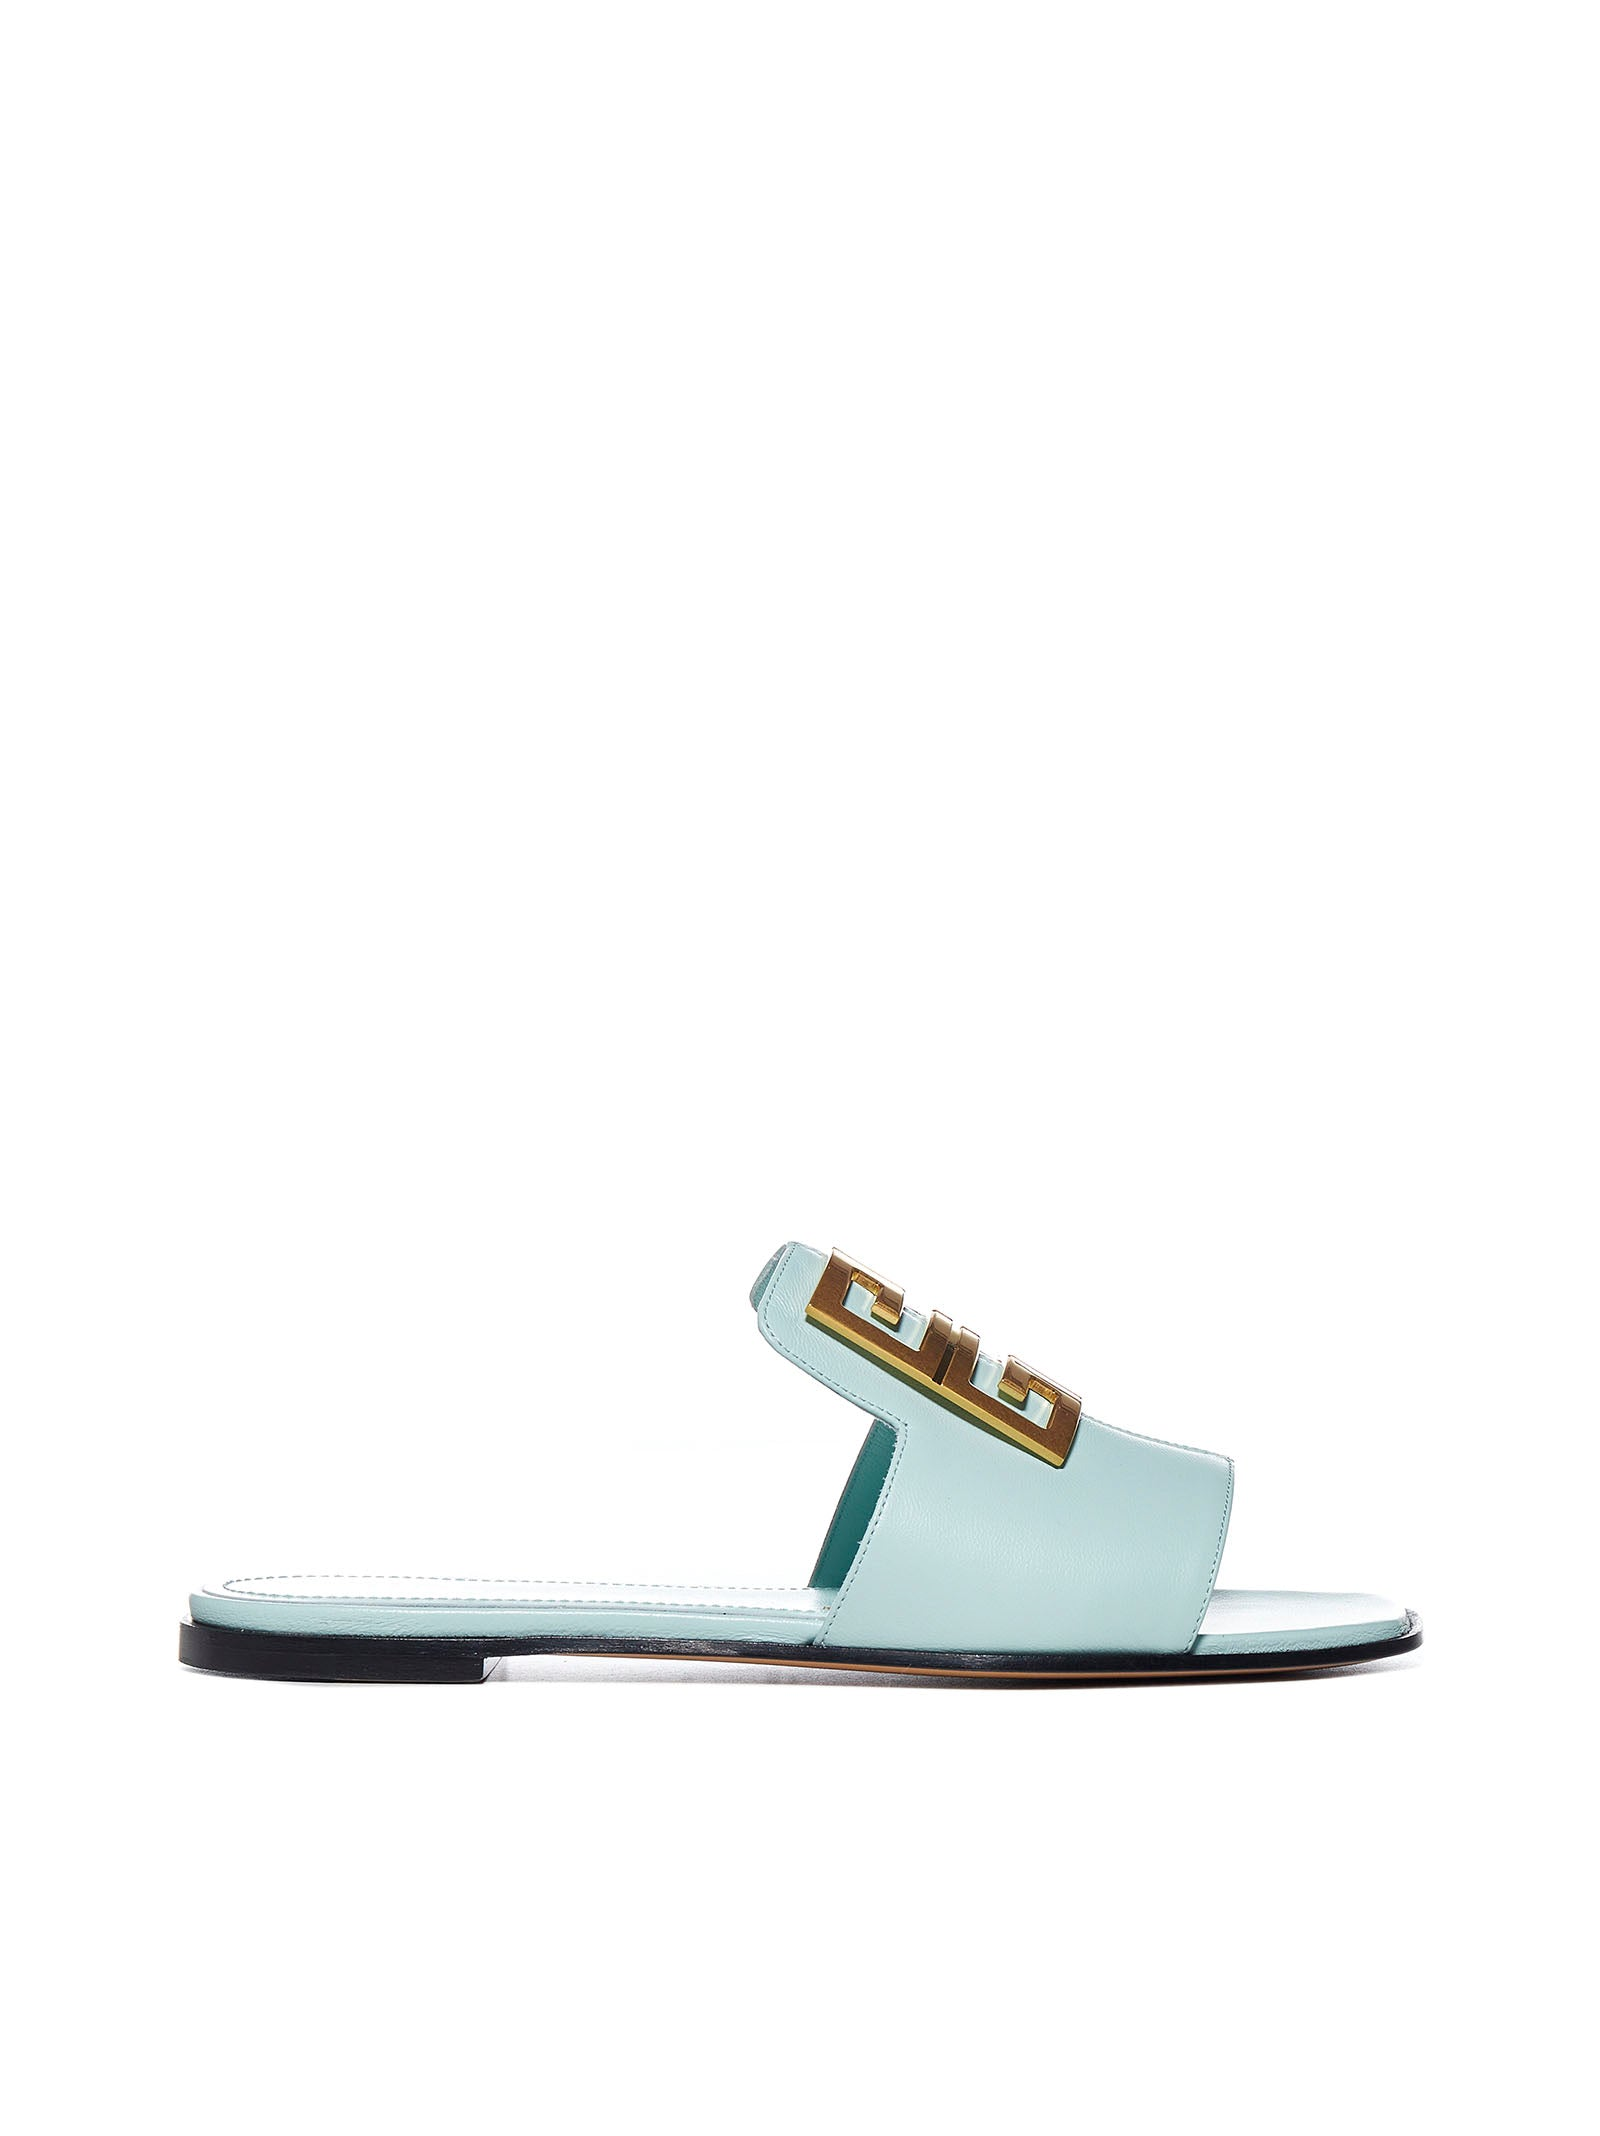 Givenchy Leathers GIVENCHY 4G BUCKLE SANDALS